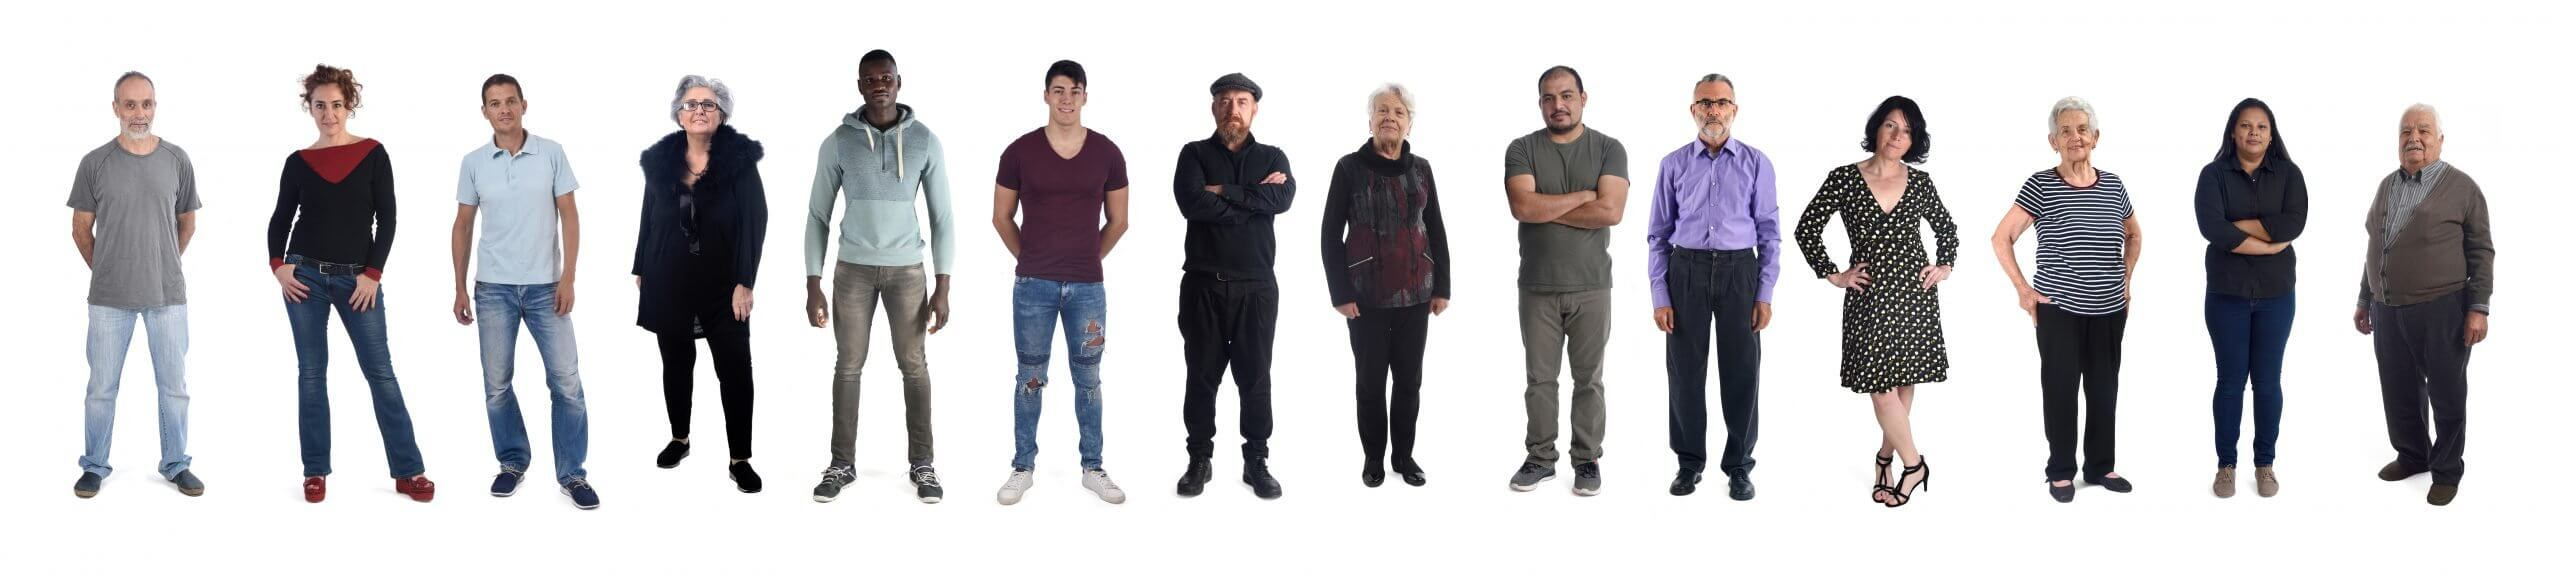 group of mixed people on white